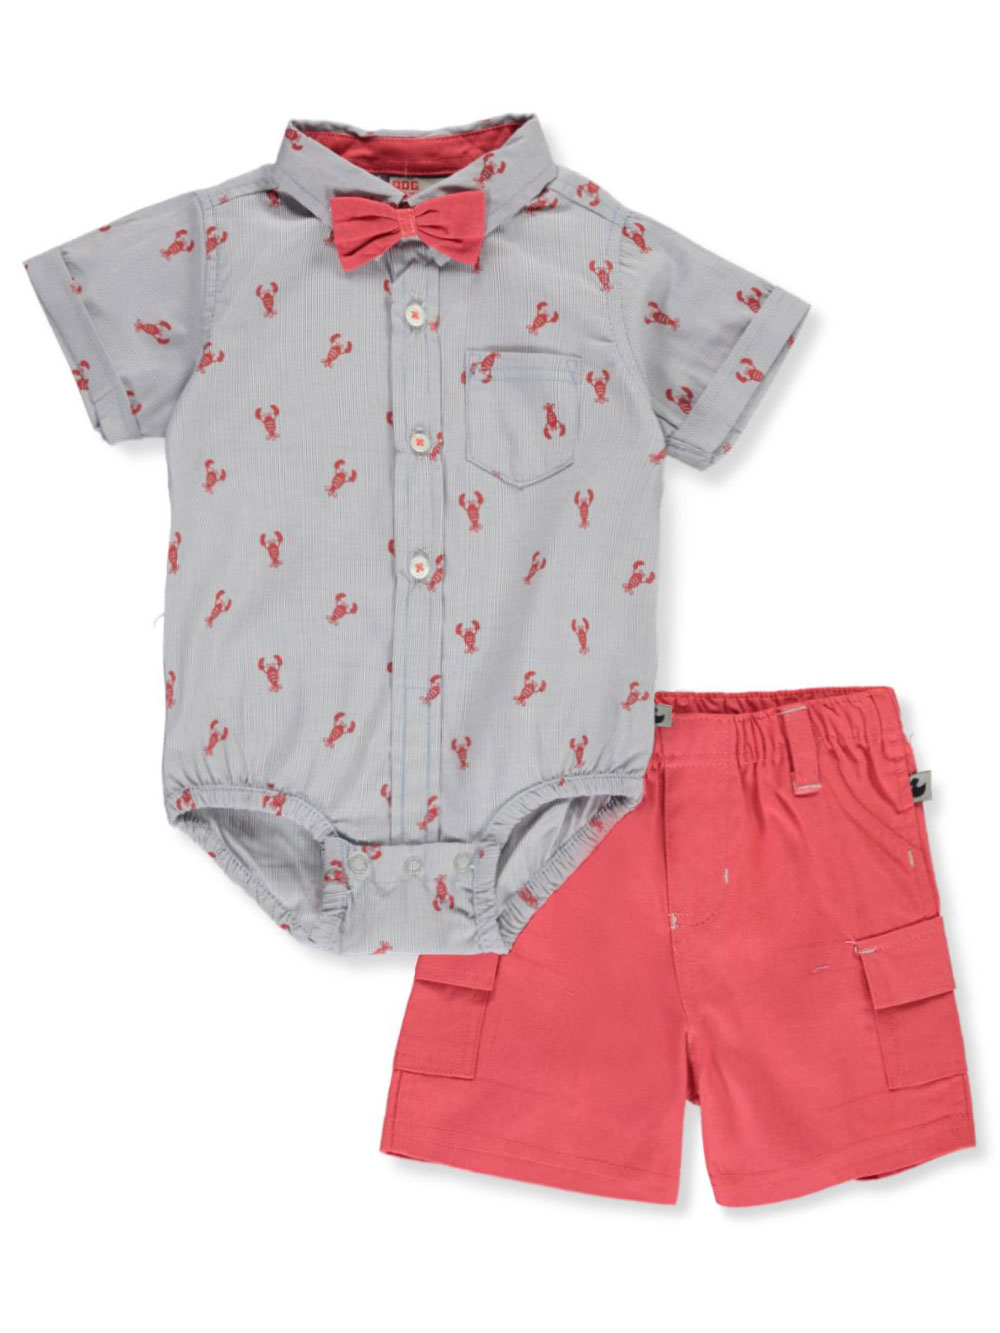 Boys Gray Multicolor Short Sets